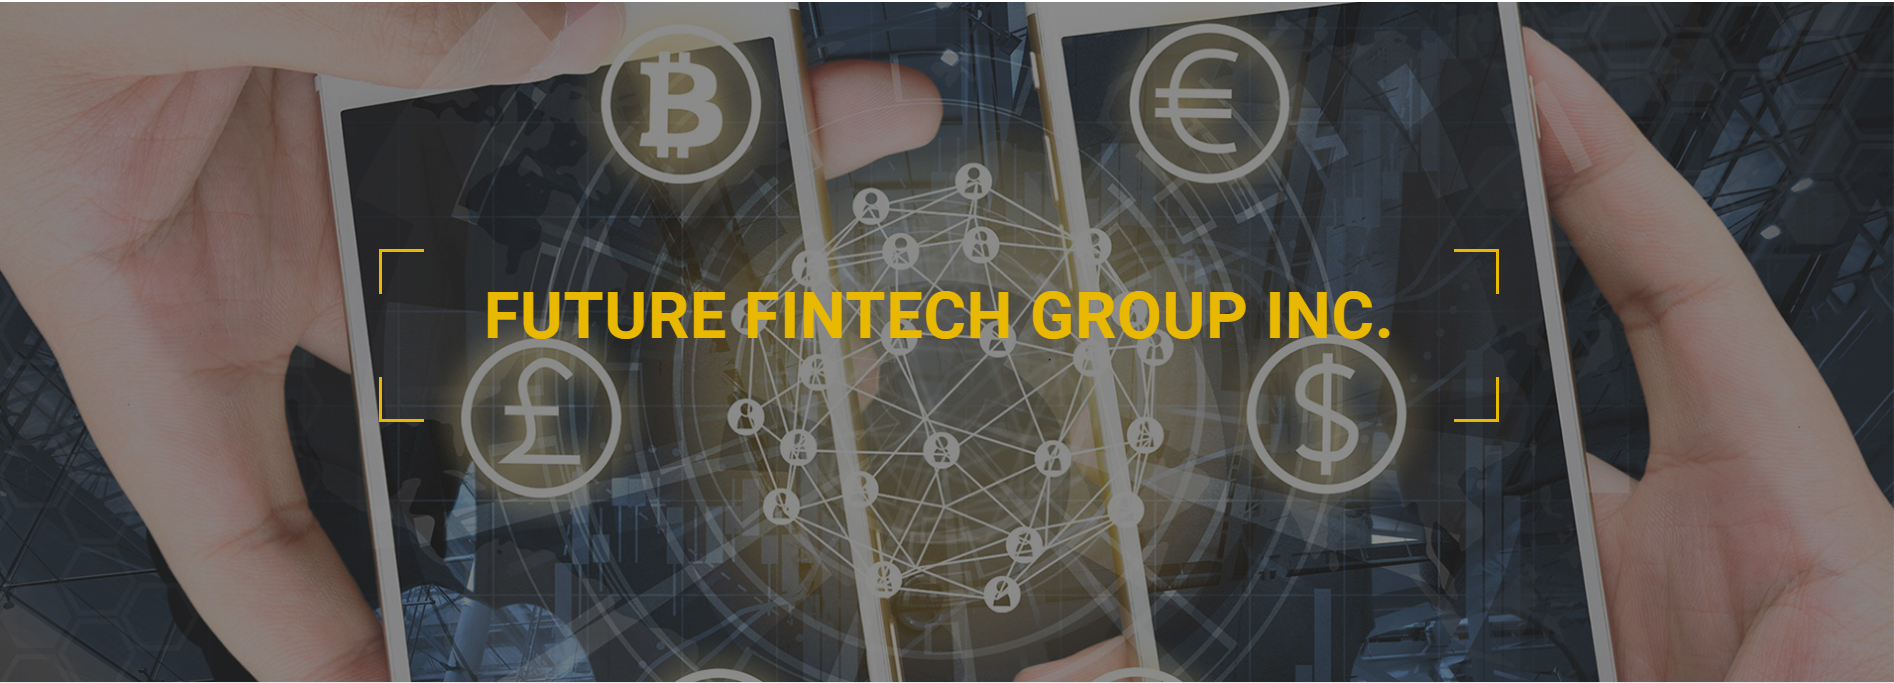 Future FinTech Announces New Subsidiary for Cloud Mall; Shares Slide